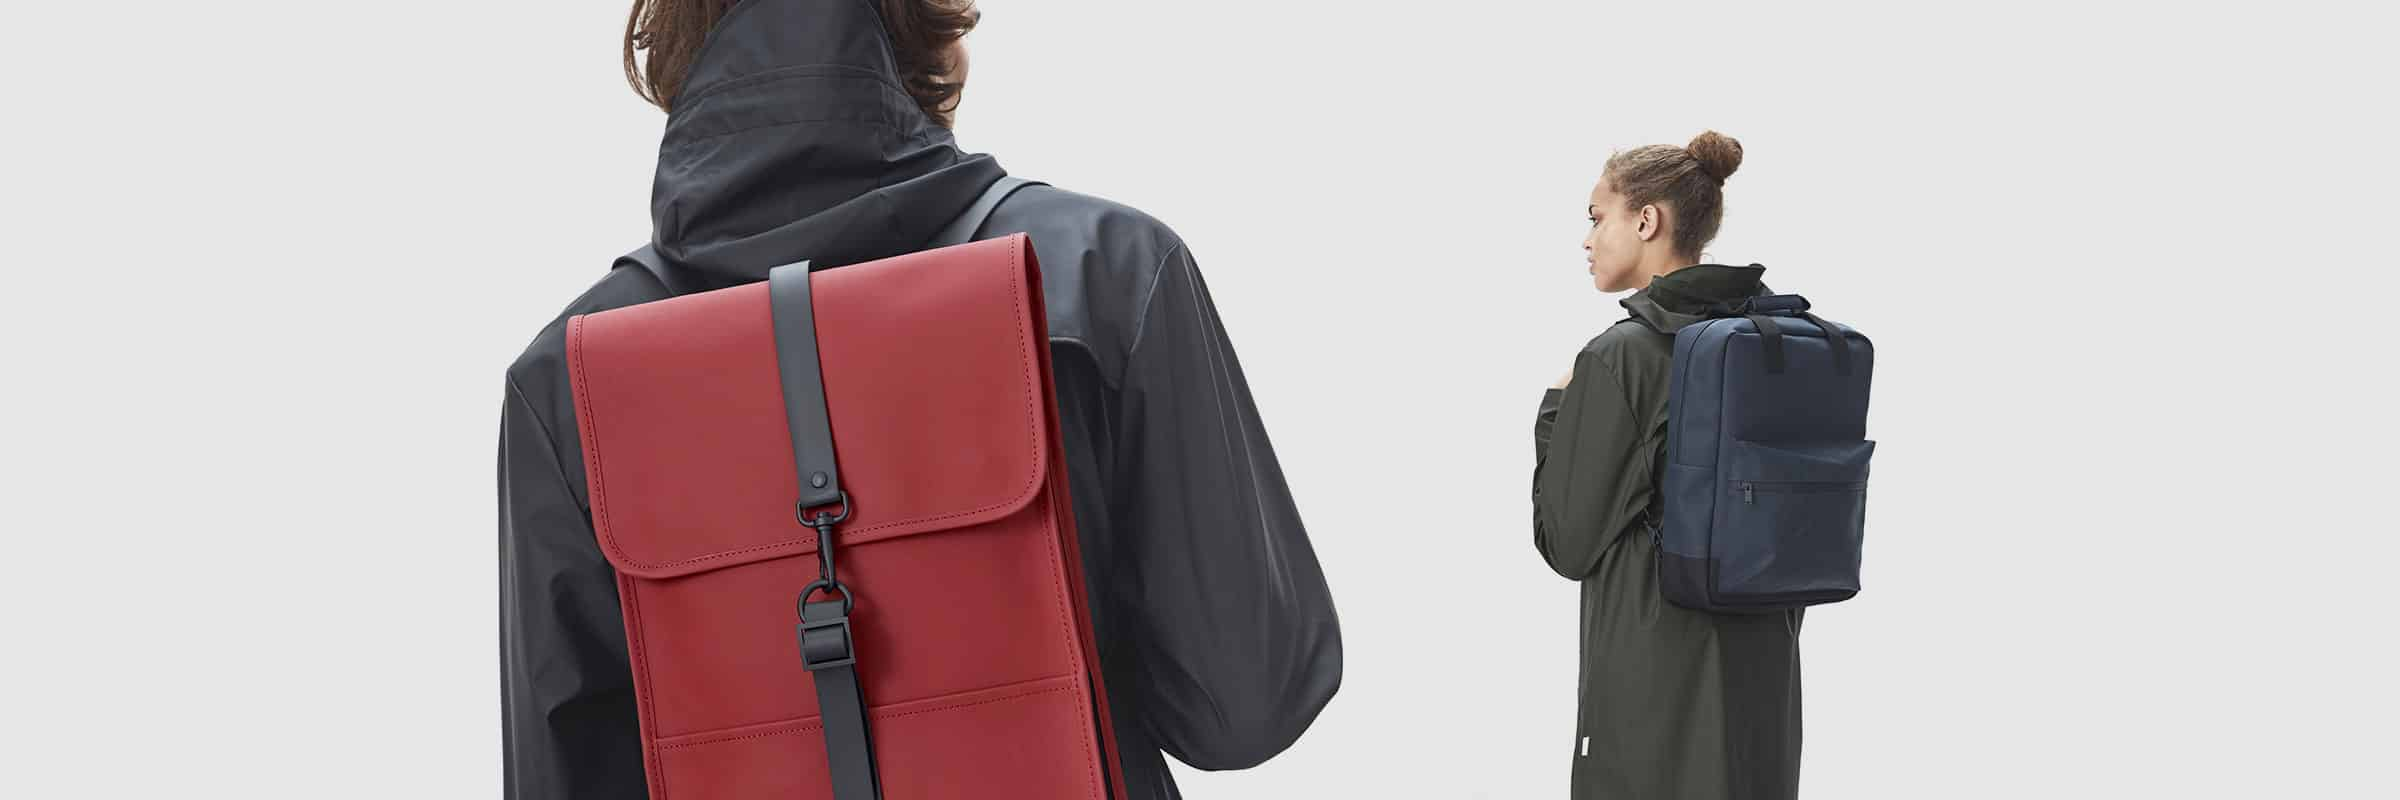 The Top Urban Bags Backpacks For Wet Weather Commutes